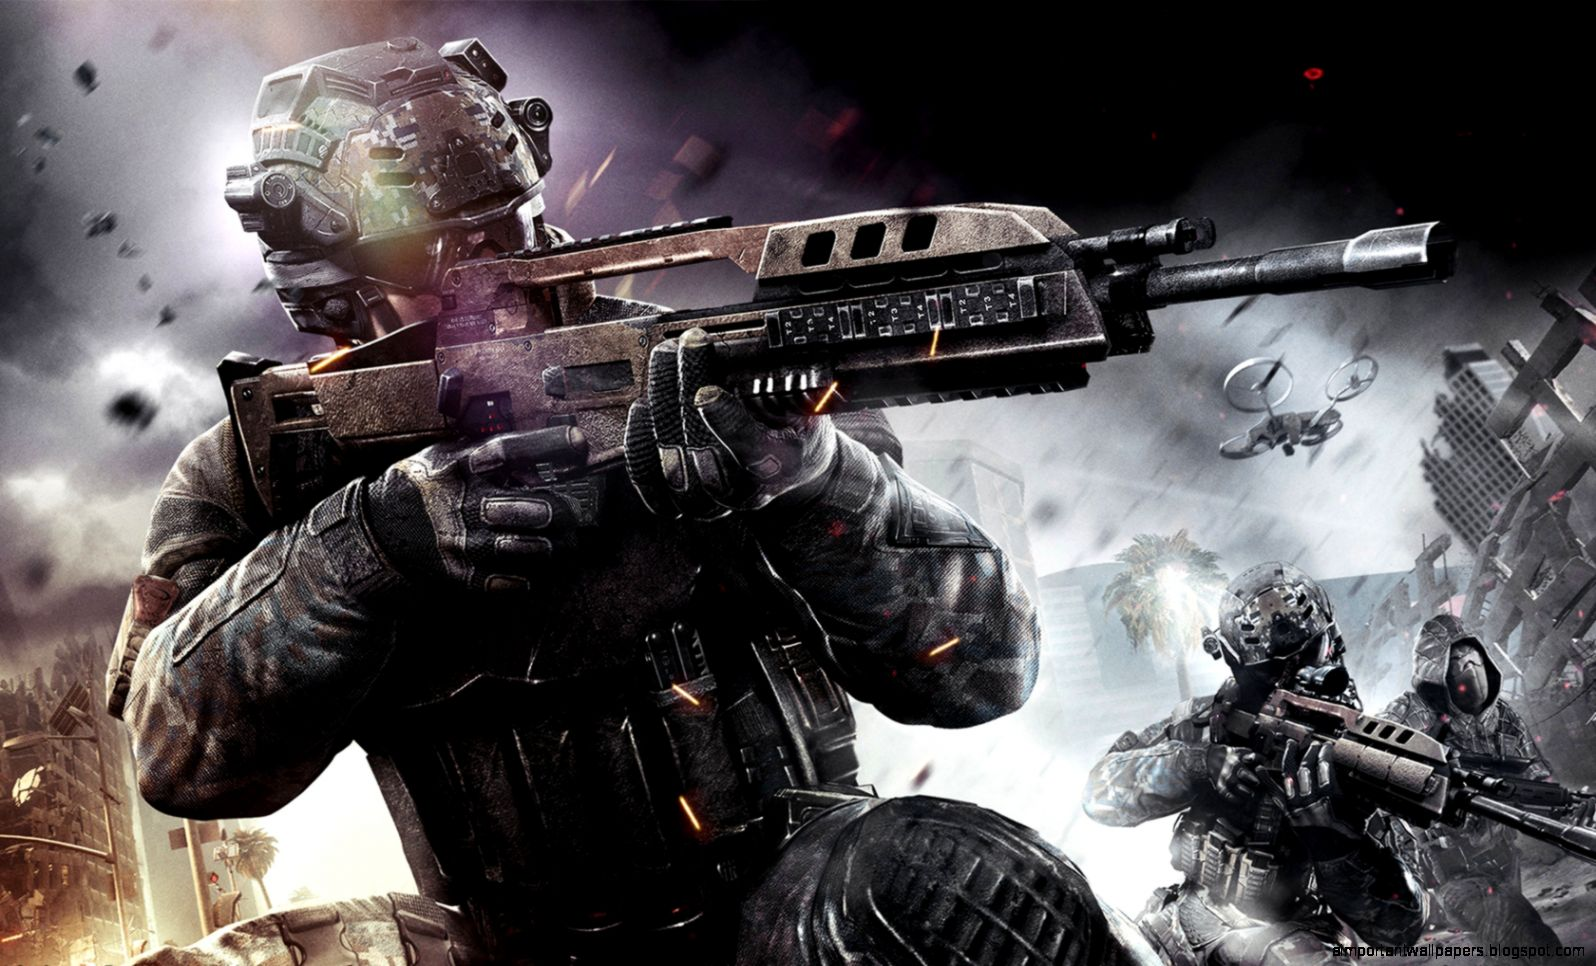 Black Ops Video Game Wallpaperp Hd Wallpaper Download Important